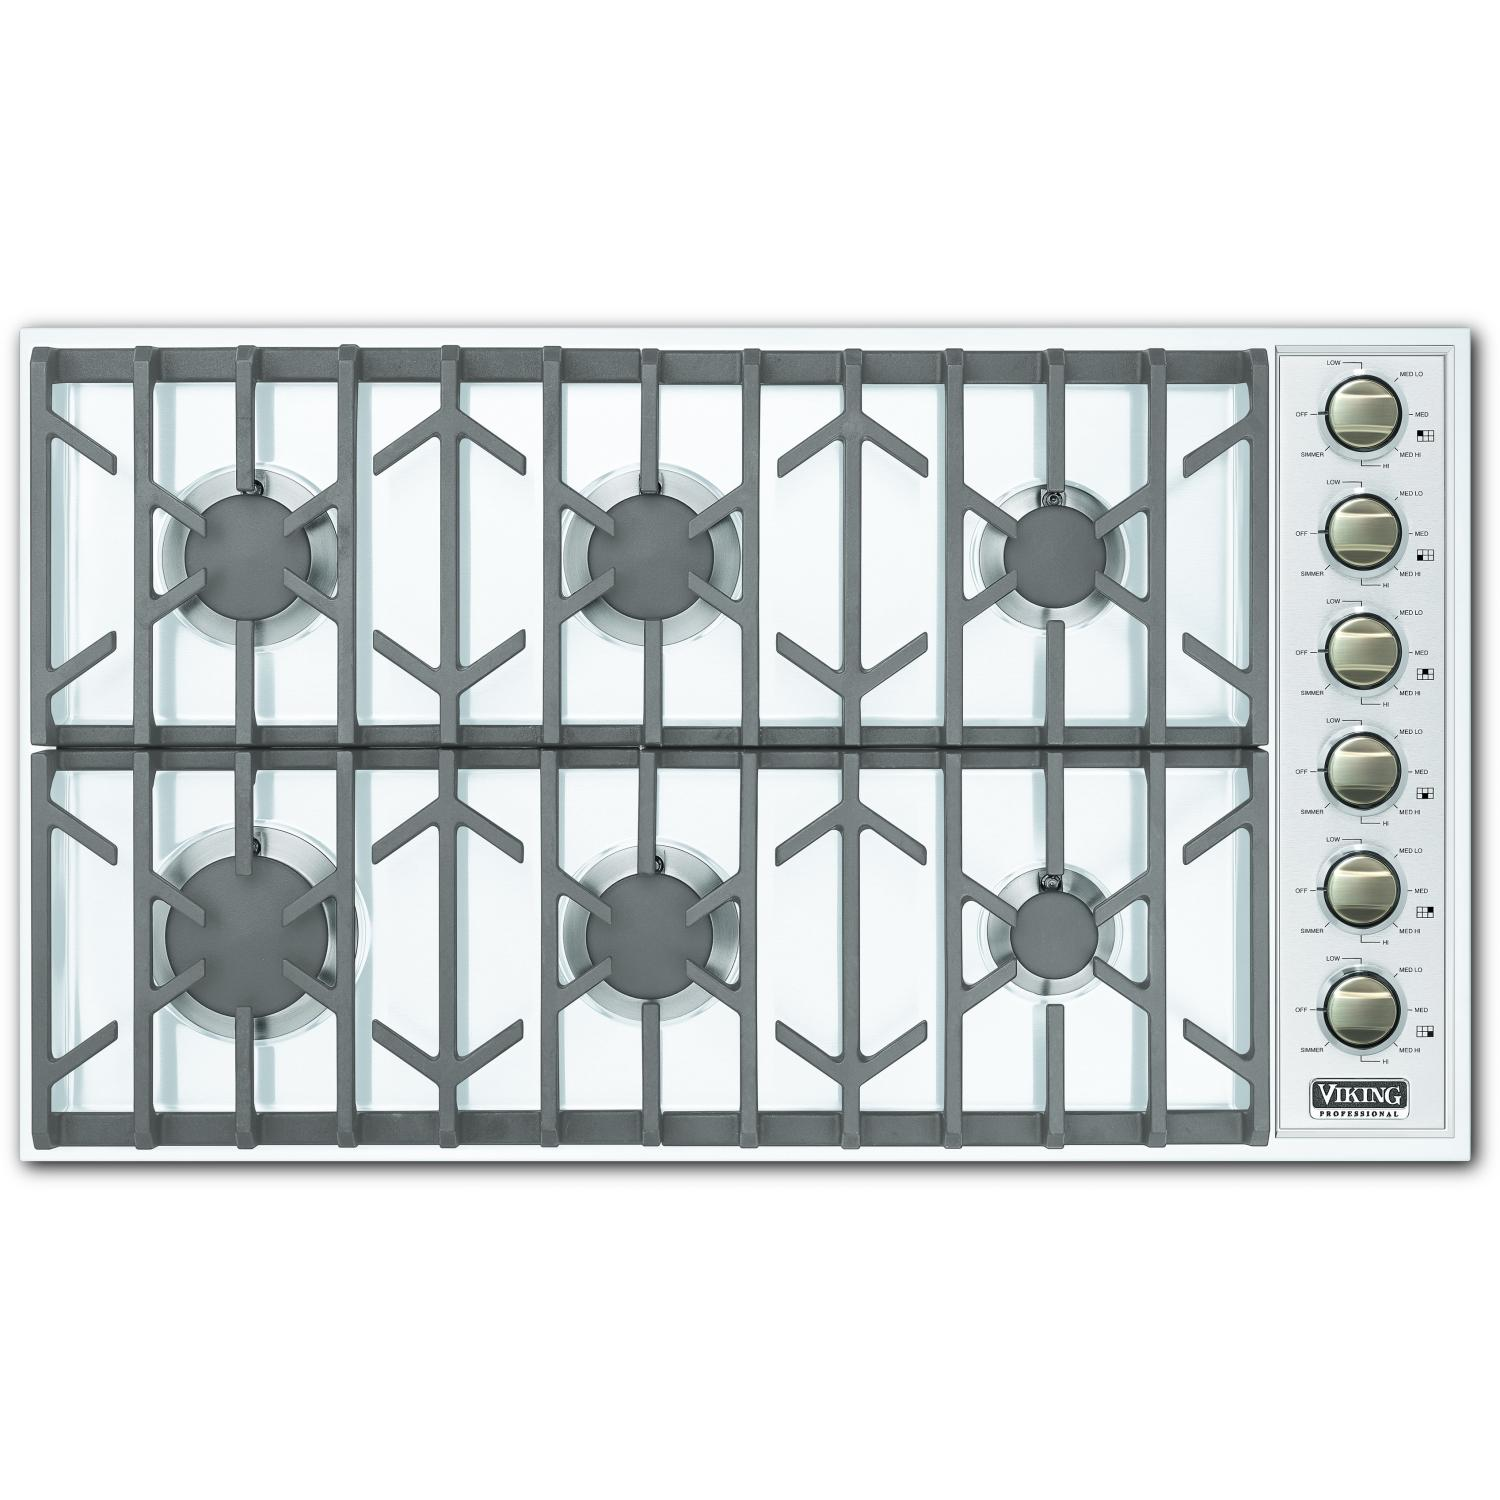 Viking VGSU164-6B 36-Inch Professional Series Natural Gas Cooktop With 6 Burners - White